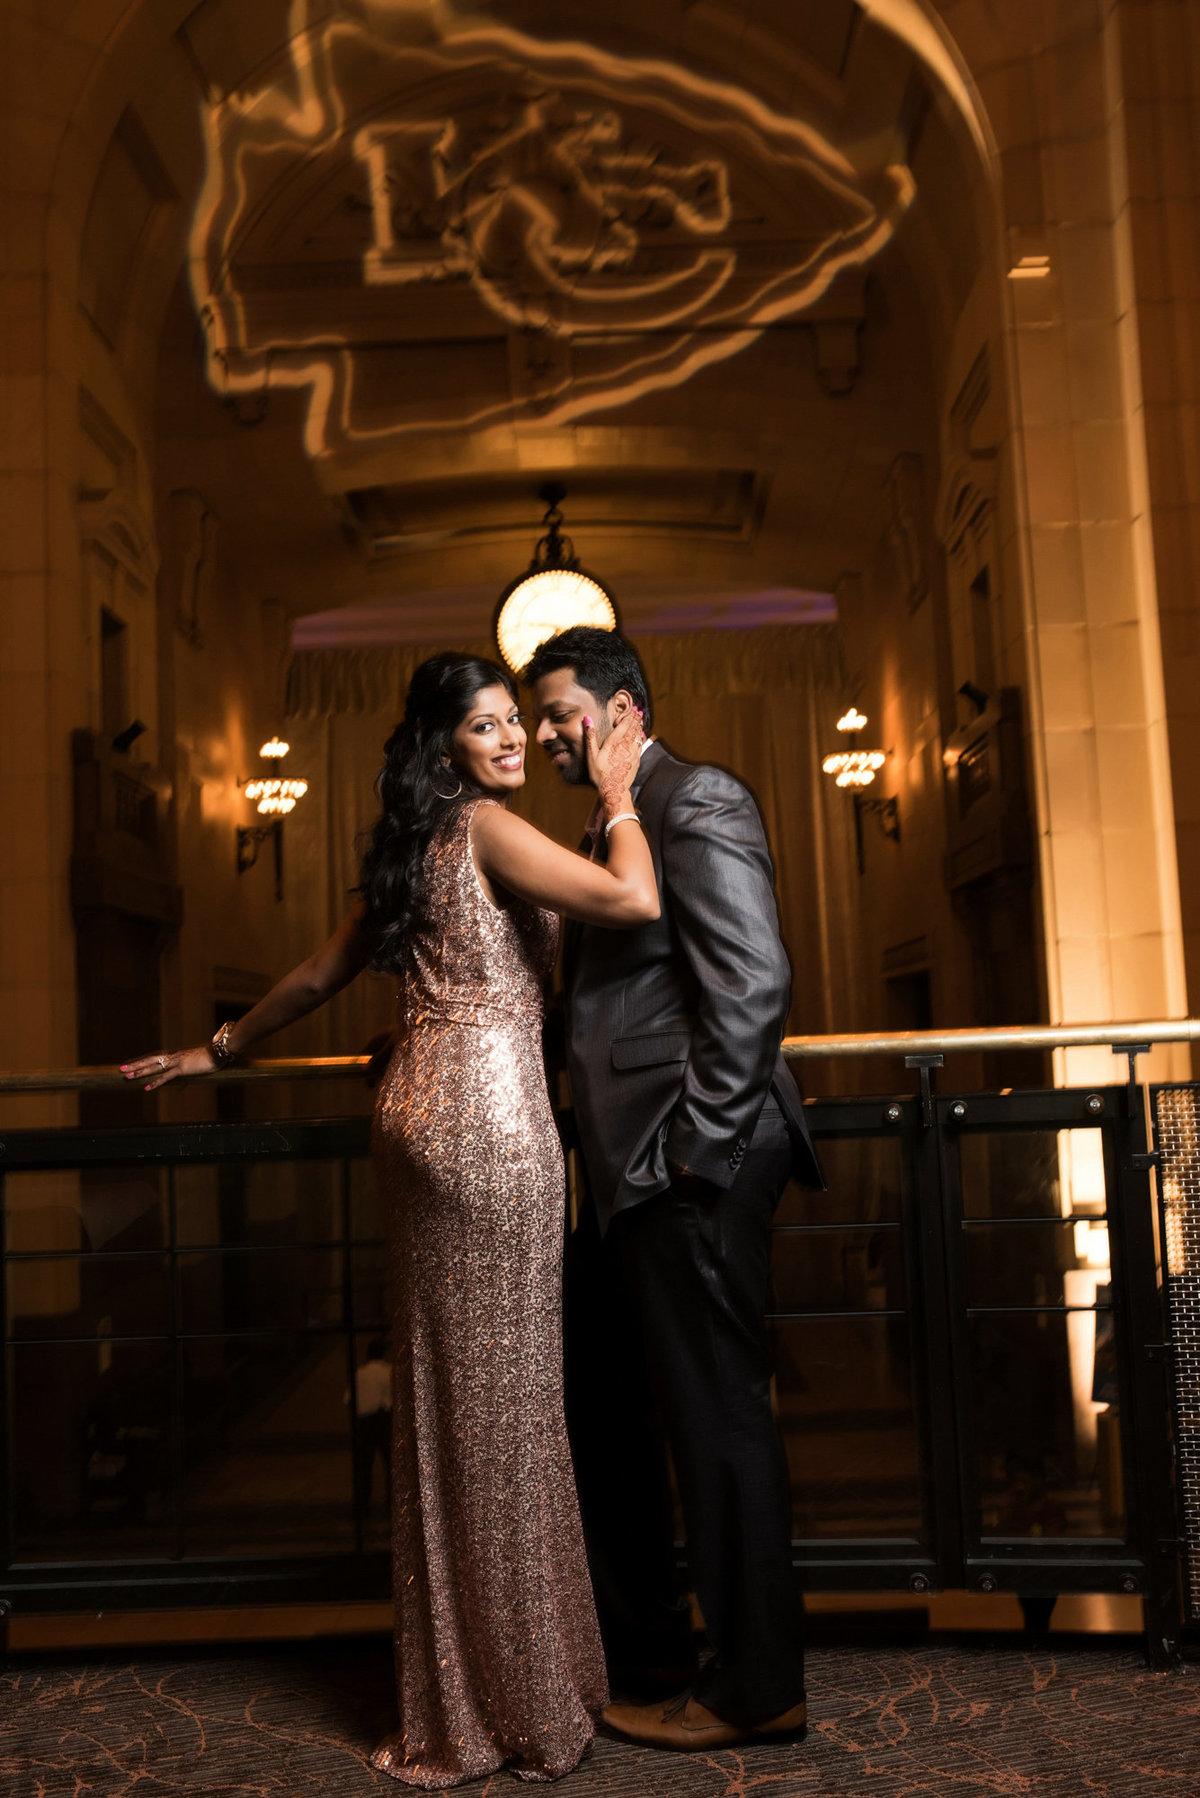 Union-station-indian-wedding-0009